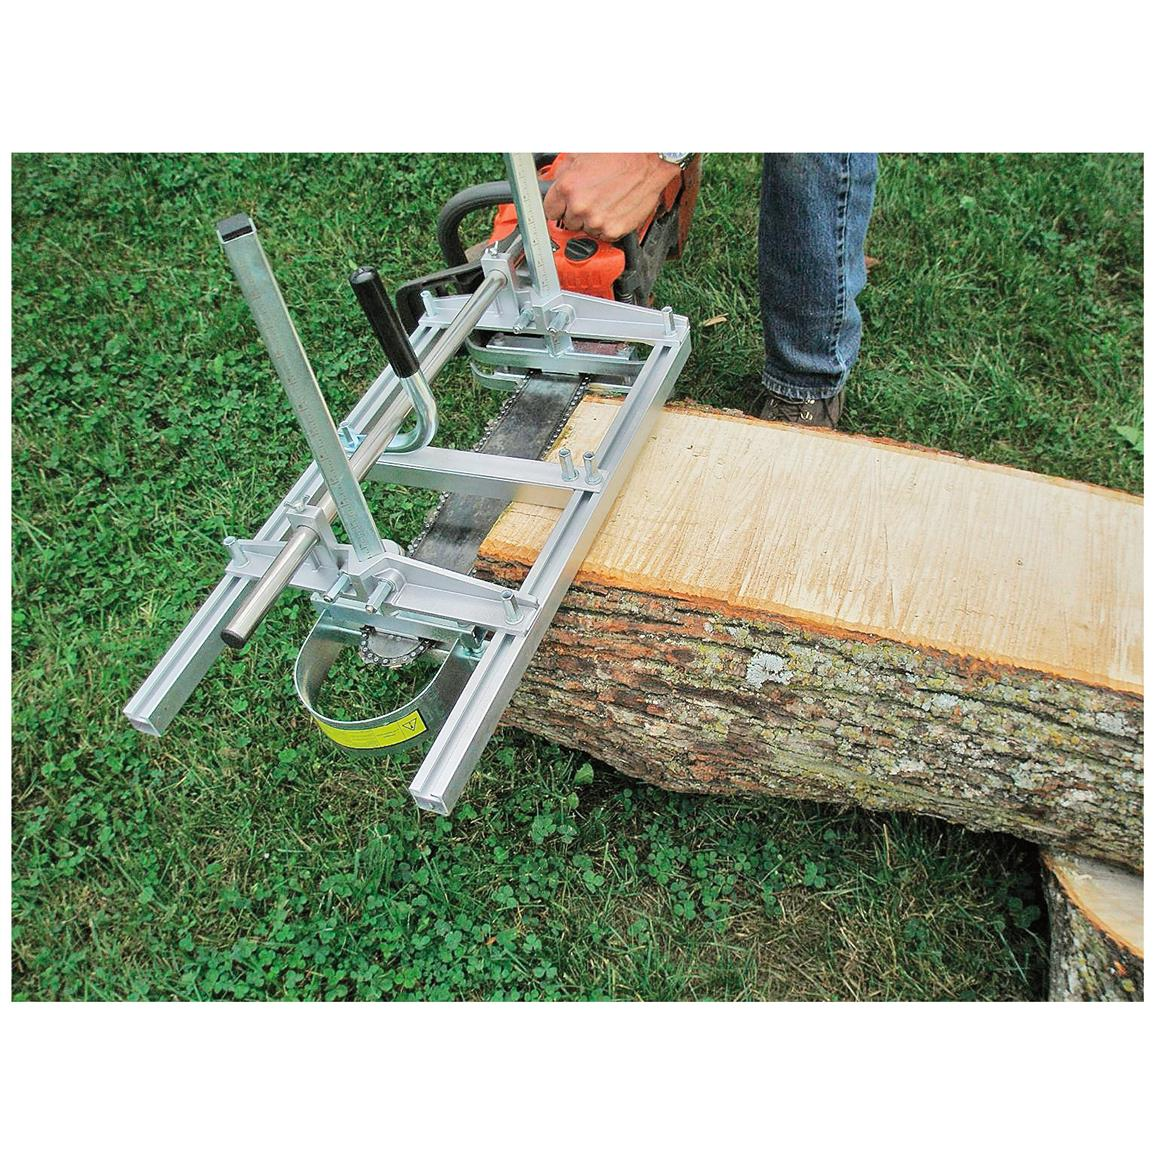 "Adjustable side bracket makes this tool fit on a variety of different bar lengths up to 18""-36""."